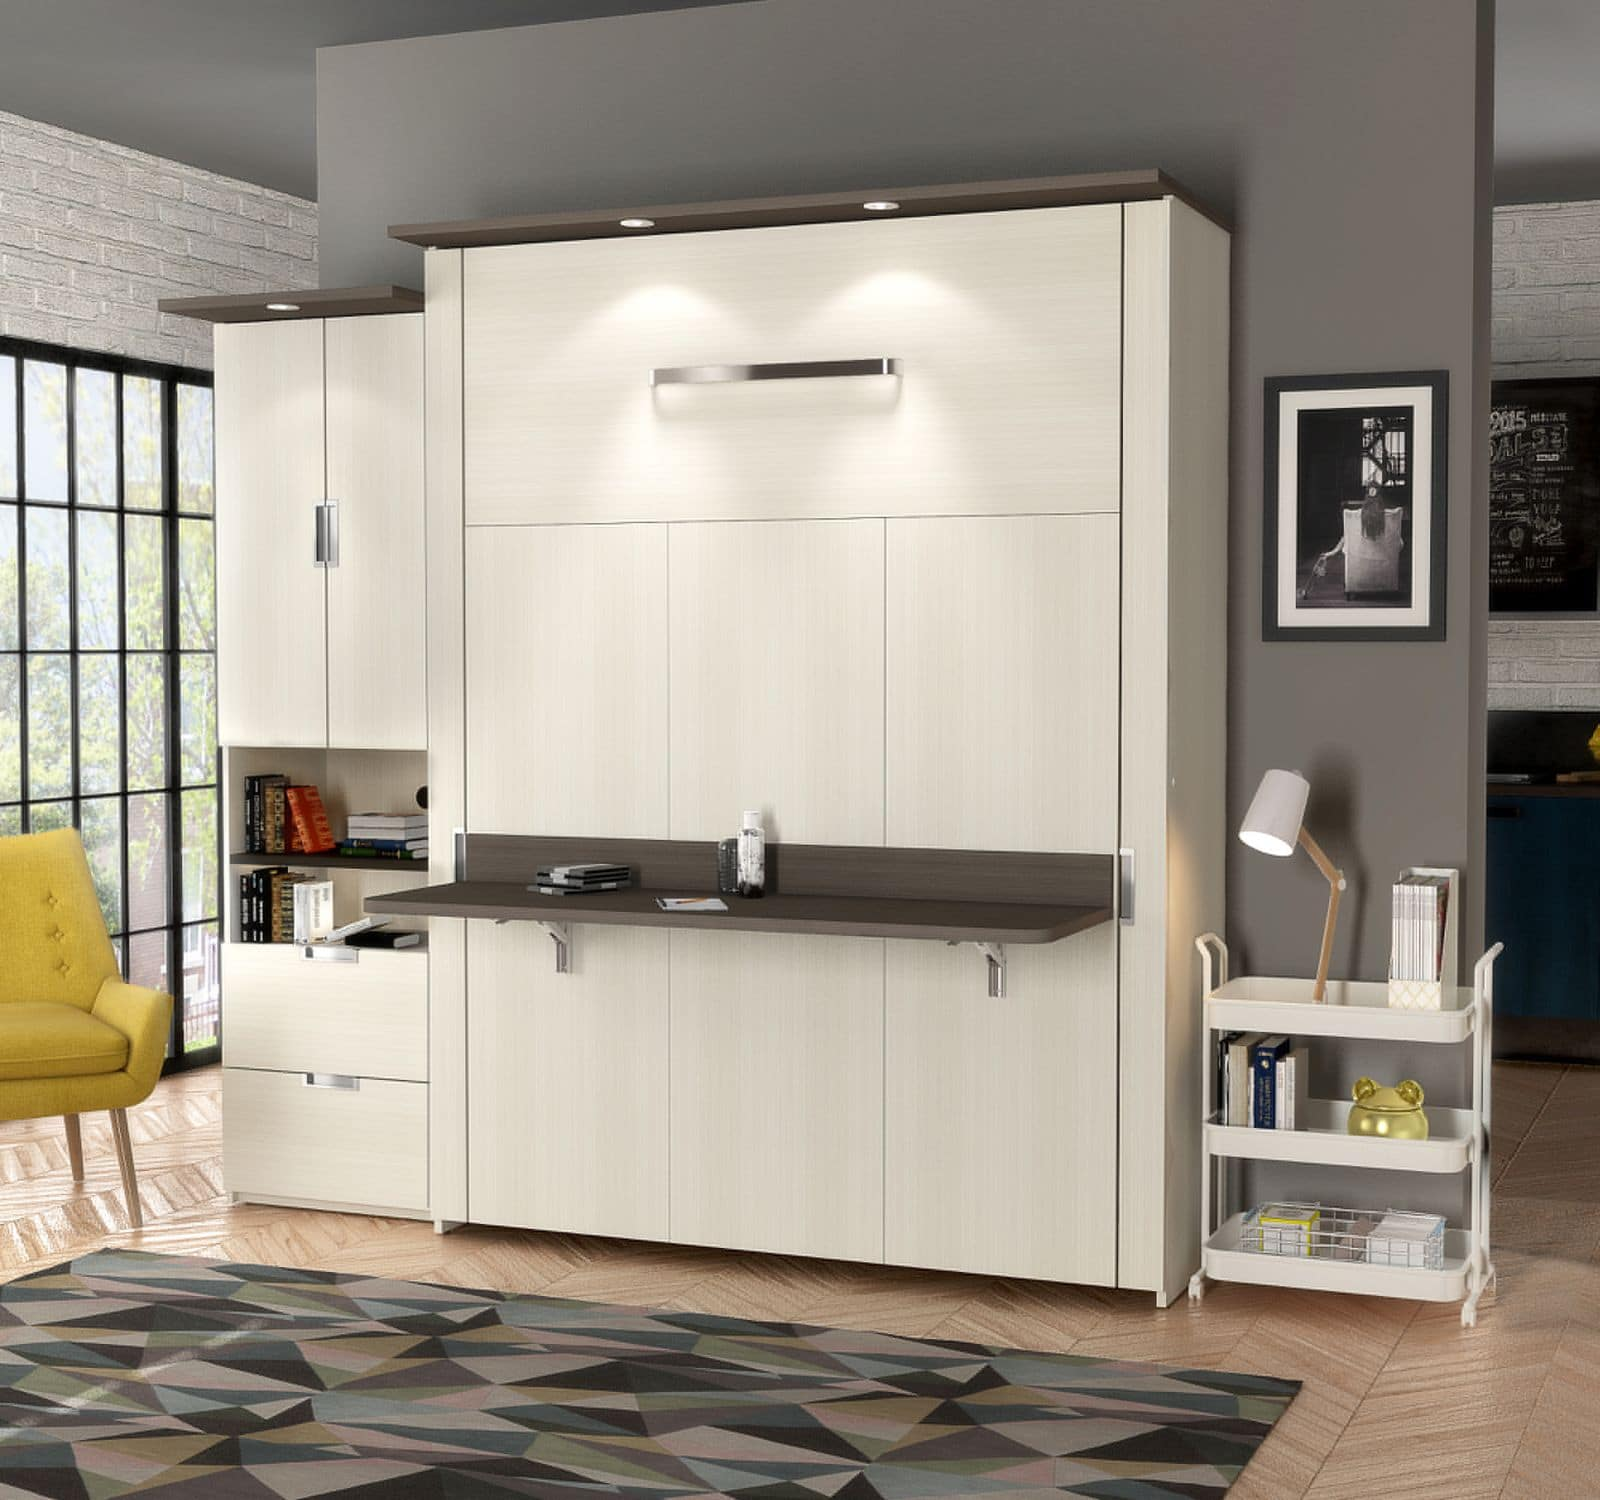 4 Reasons to Add a Murphy Bed with Desk to Your Home